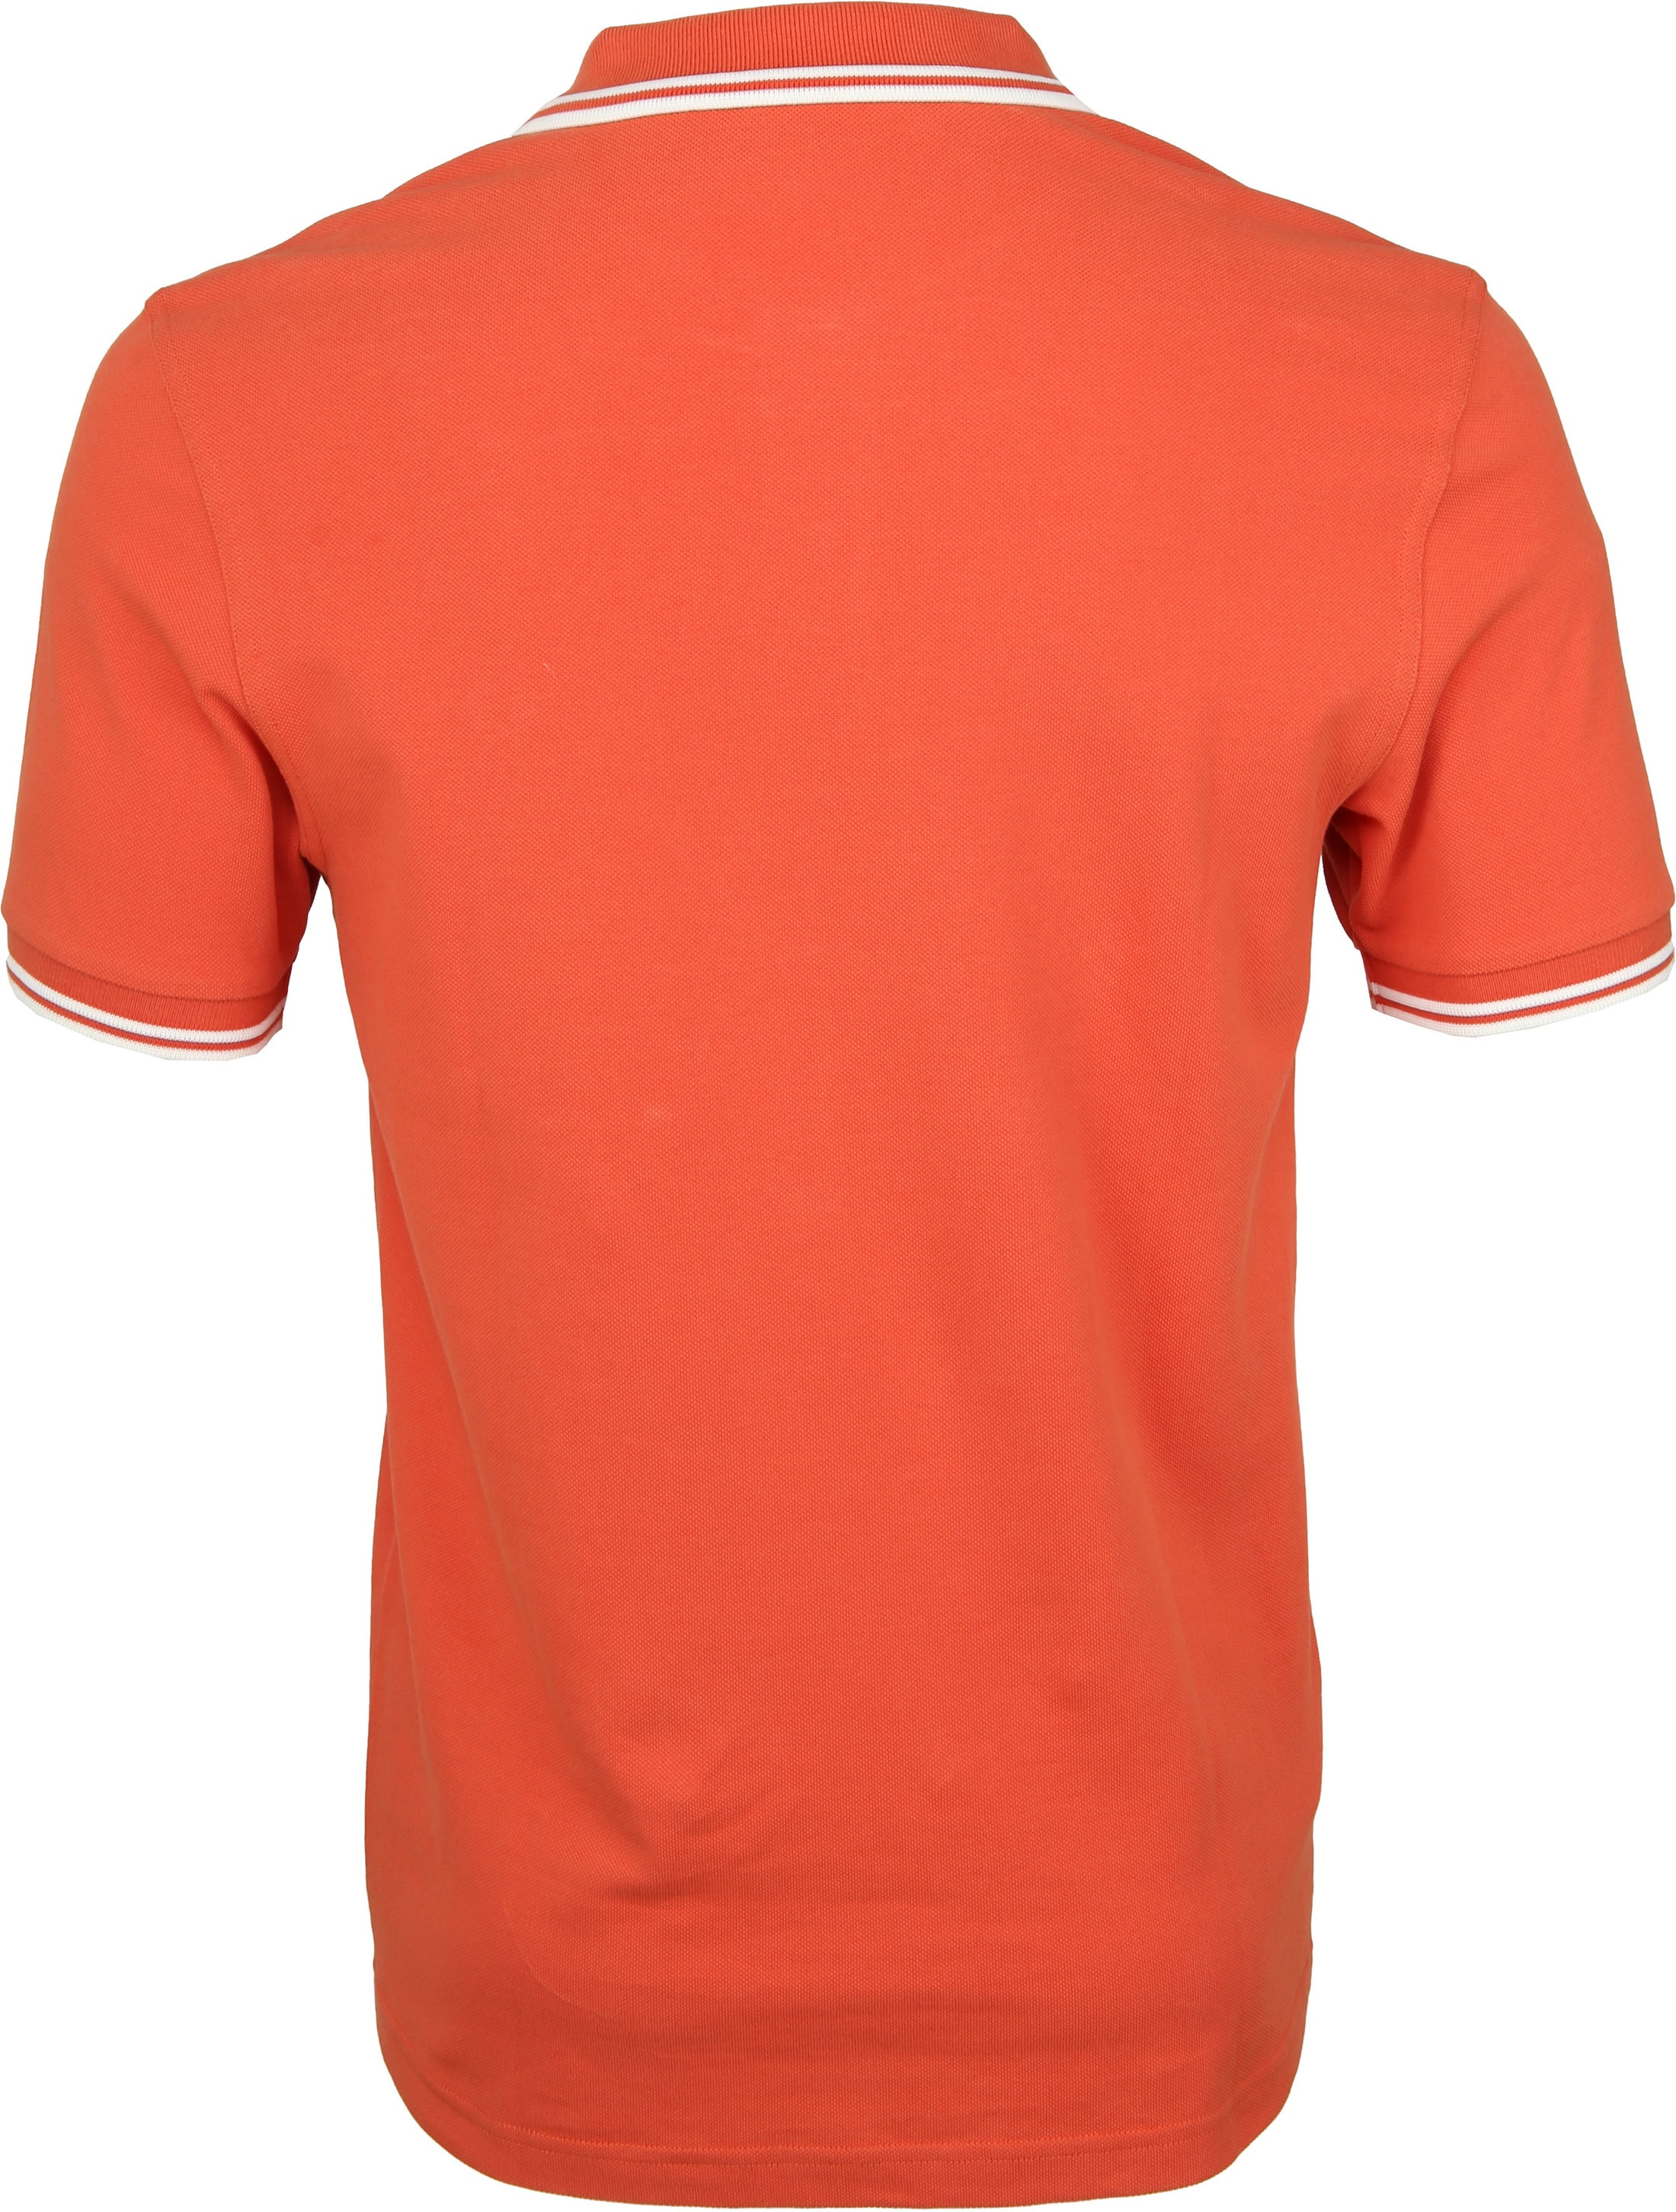 Fred Perry Poloshirt Orange G93 foto 2